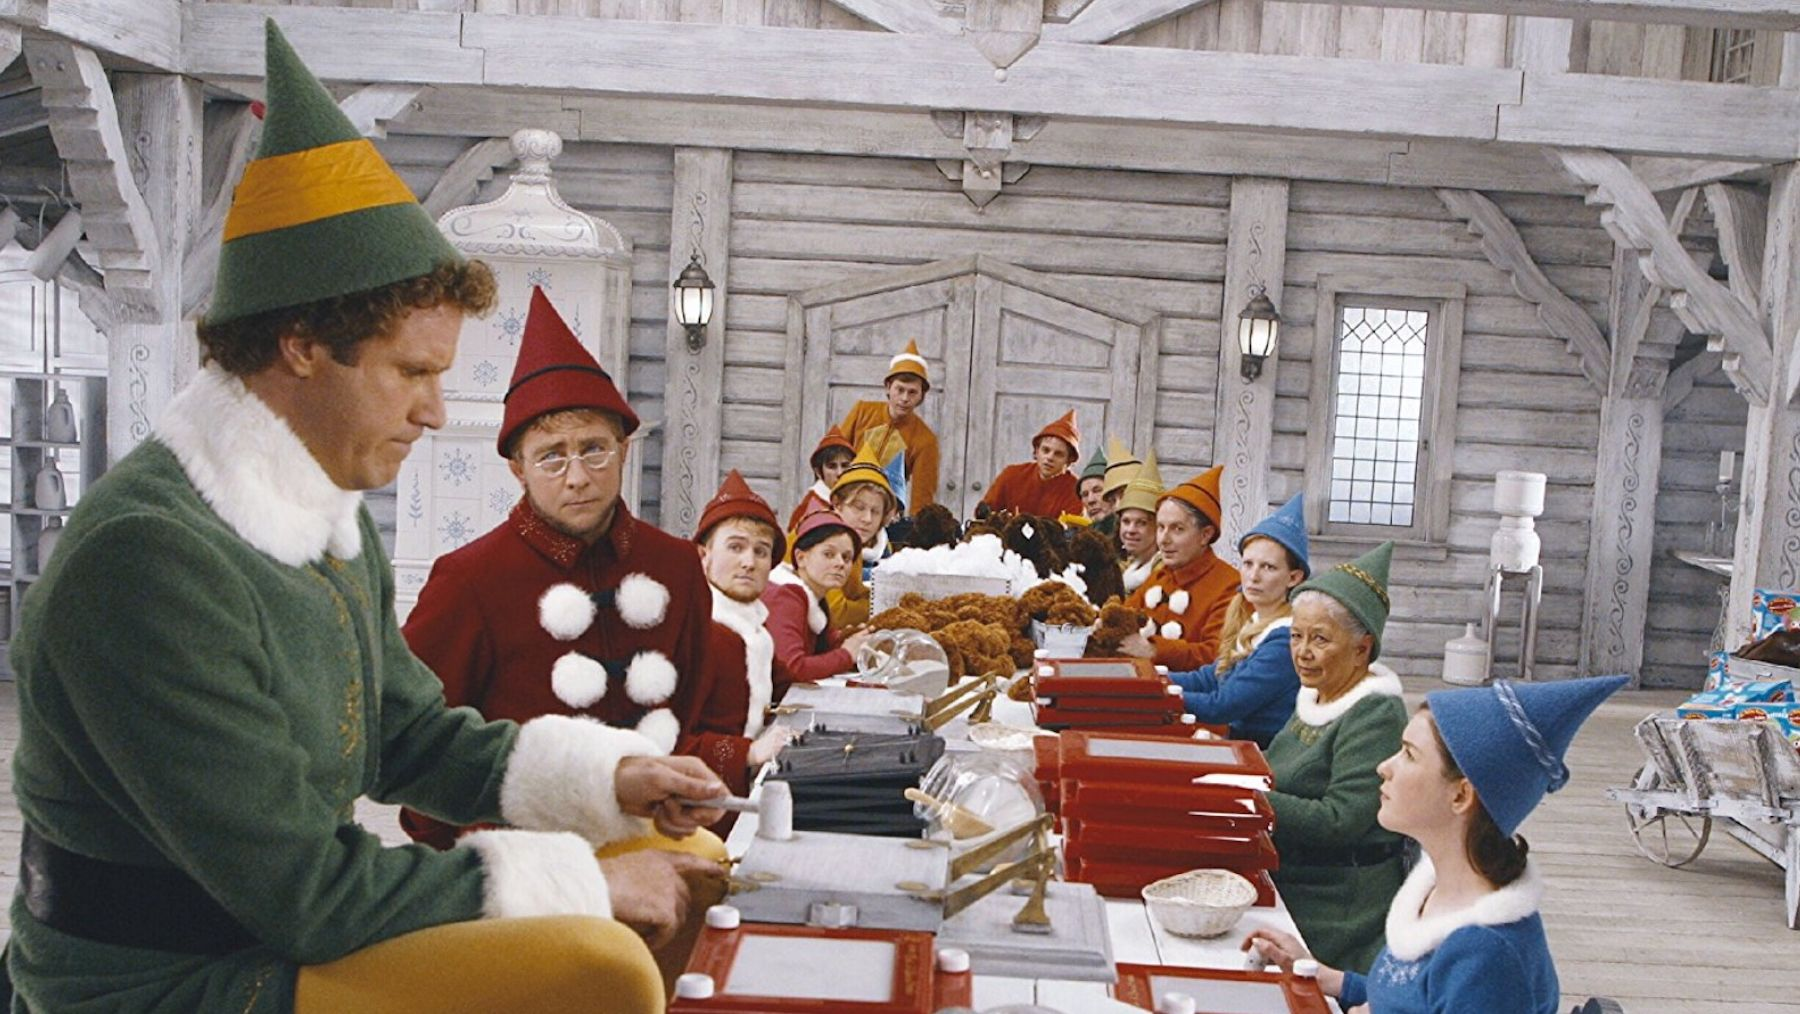 Fun Facts About 'Elf'